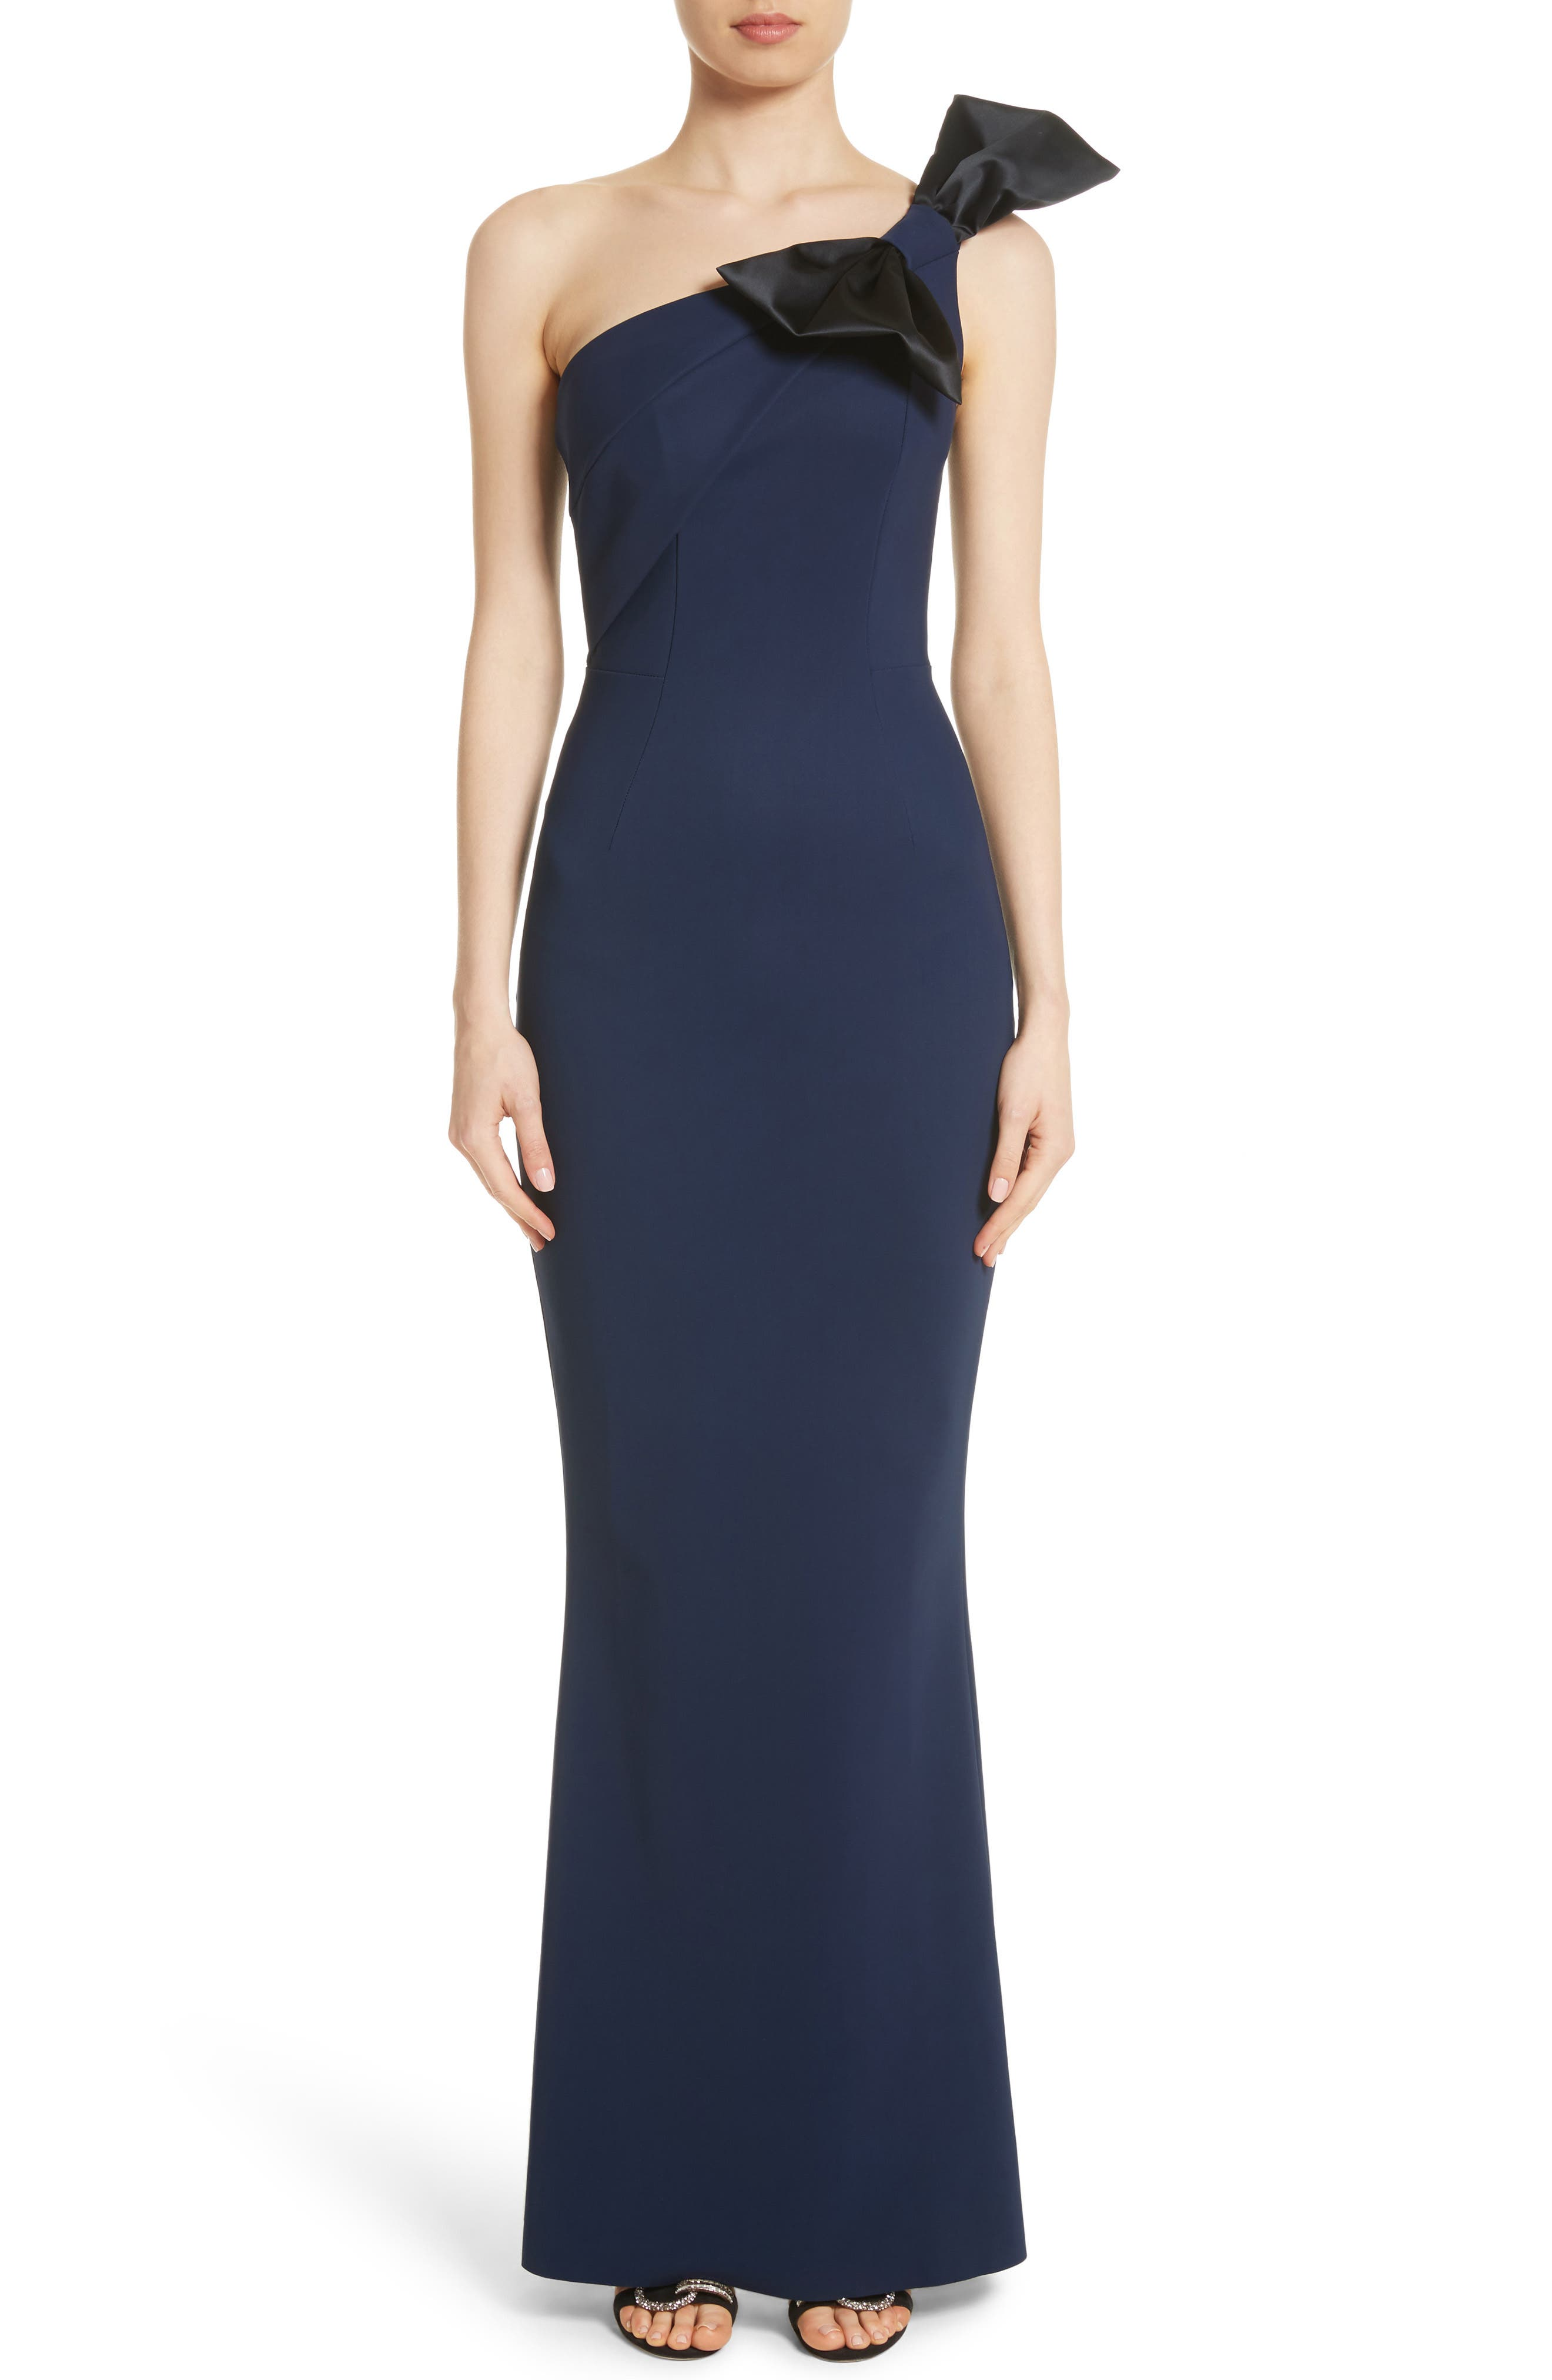 Chiara Boni La Petite Robe Jasmine One Shoulder Gown